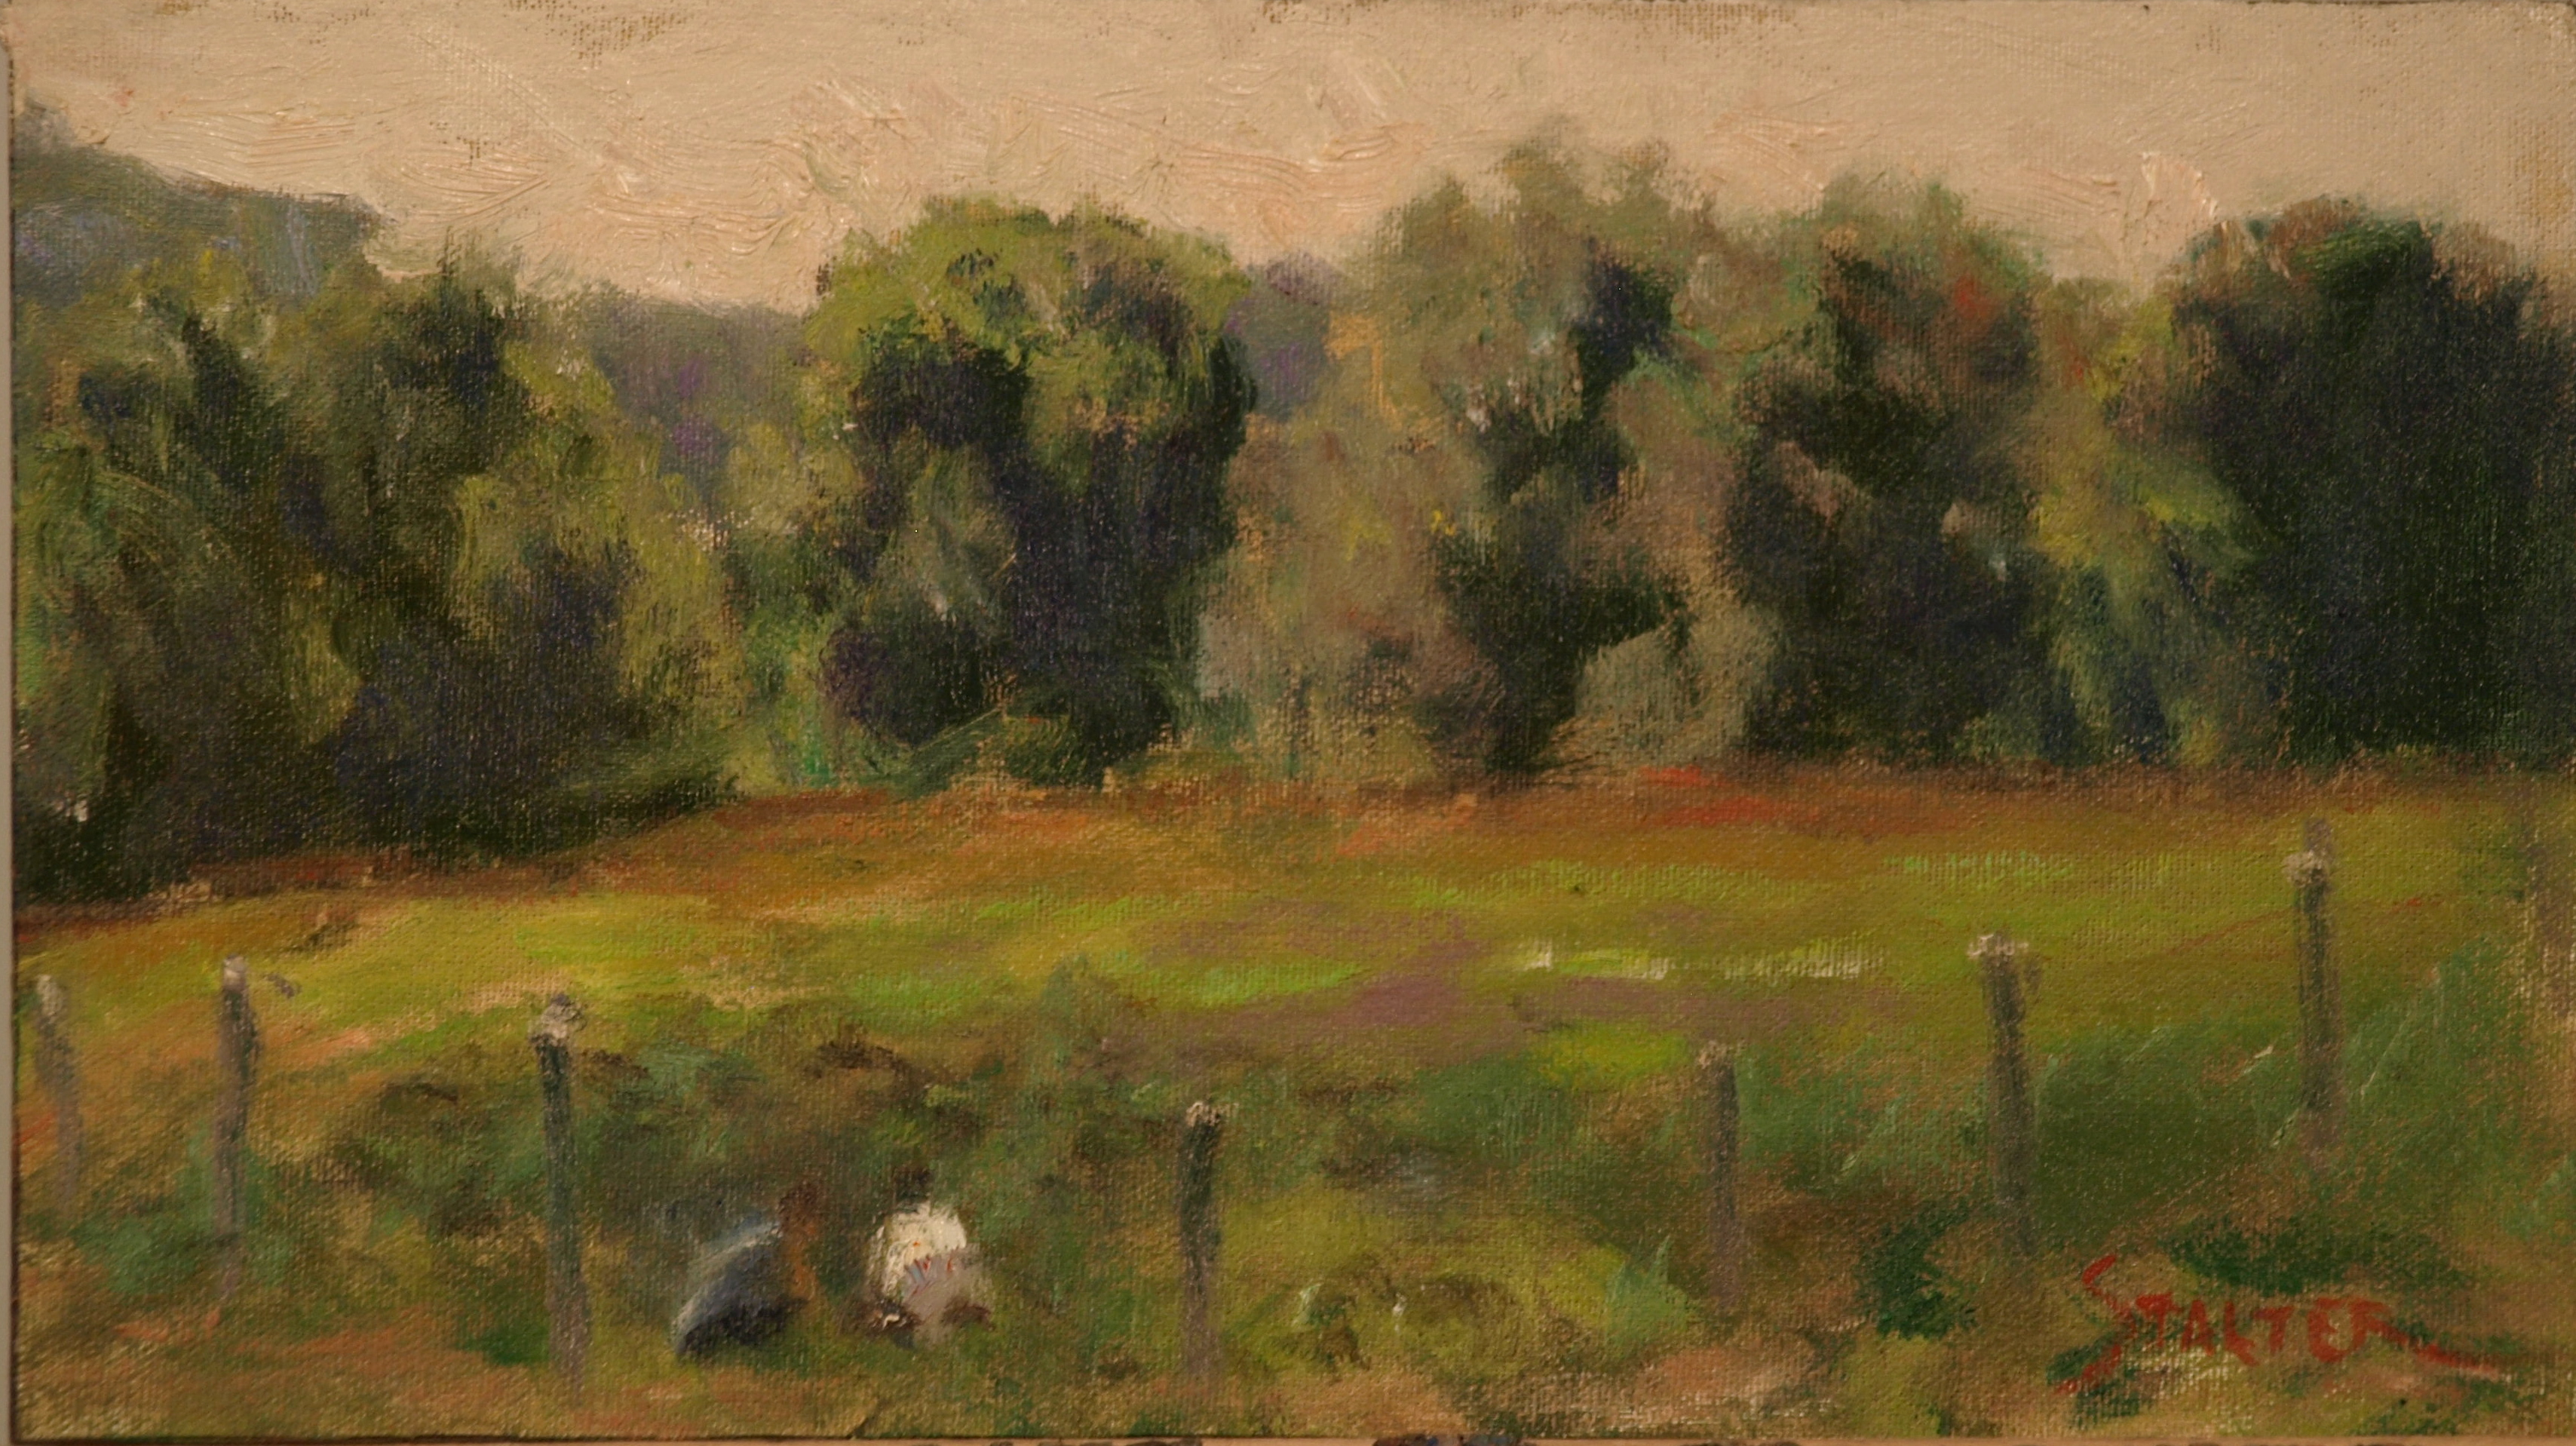 Field Workers -- Sullivan Farm, Oil on Canvas on Panel, 8 x 14 Inches, by Richard Stalter, $225